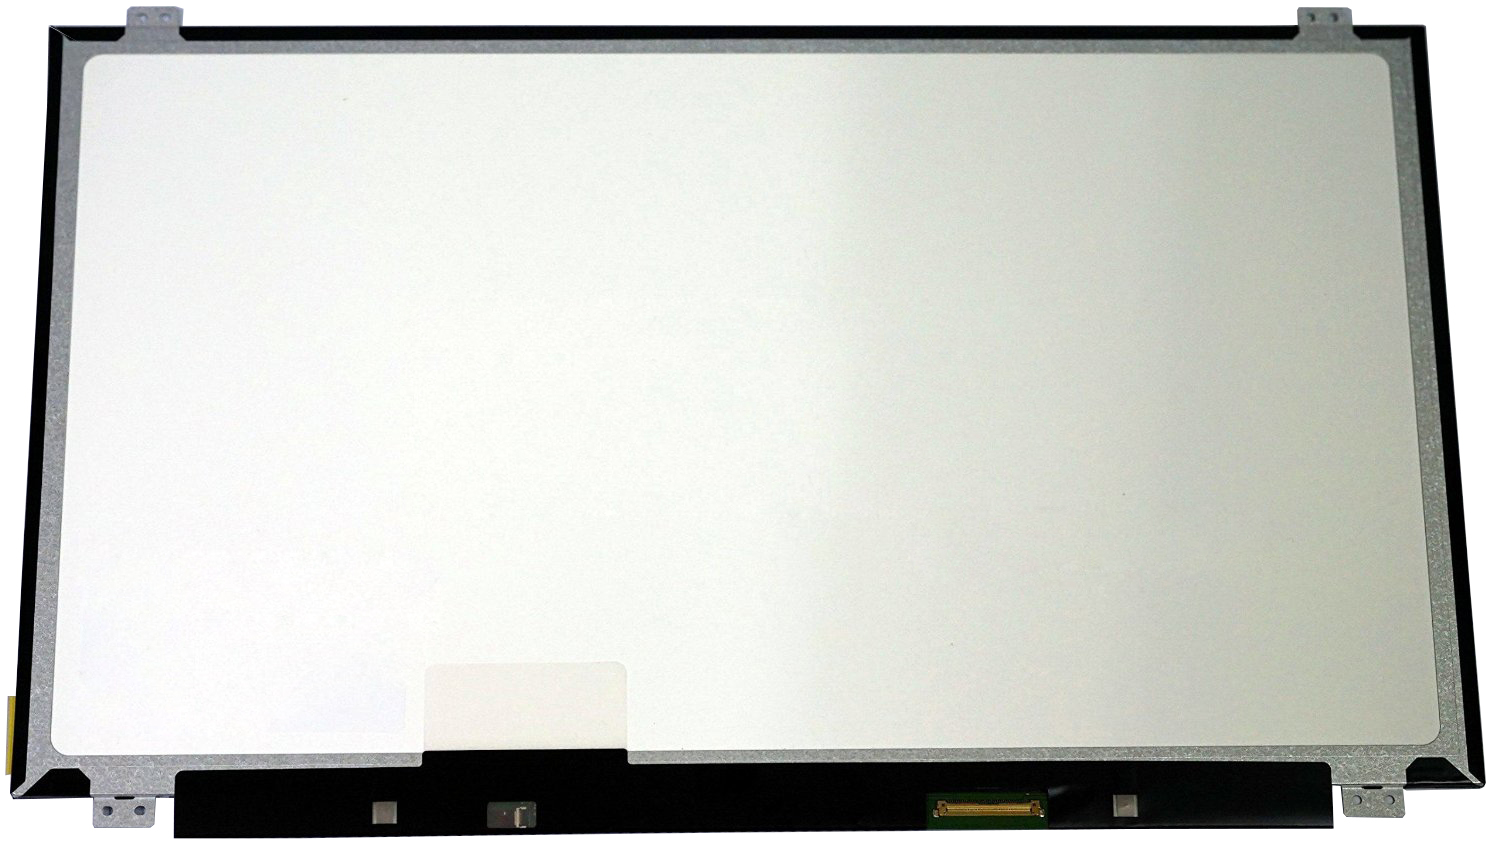 QuYing LAPTOP LCD SCREEN For ACER ASPIRE 5553 5553G 5534 5538 5538G 5943G SERIES  15.6 inch, 1366X768, 40 pin, N) quying laptop lcd screen for acer aspire ethos 5951g timeline 5745 7531 series 15 6 inch 1366x768 40pin n